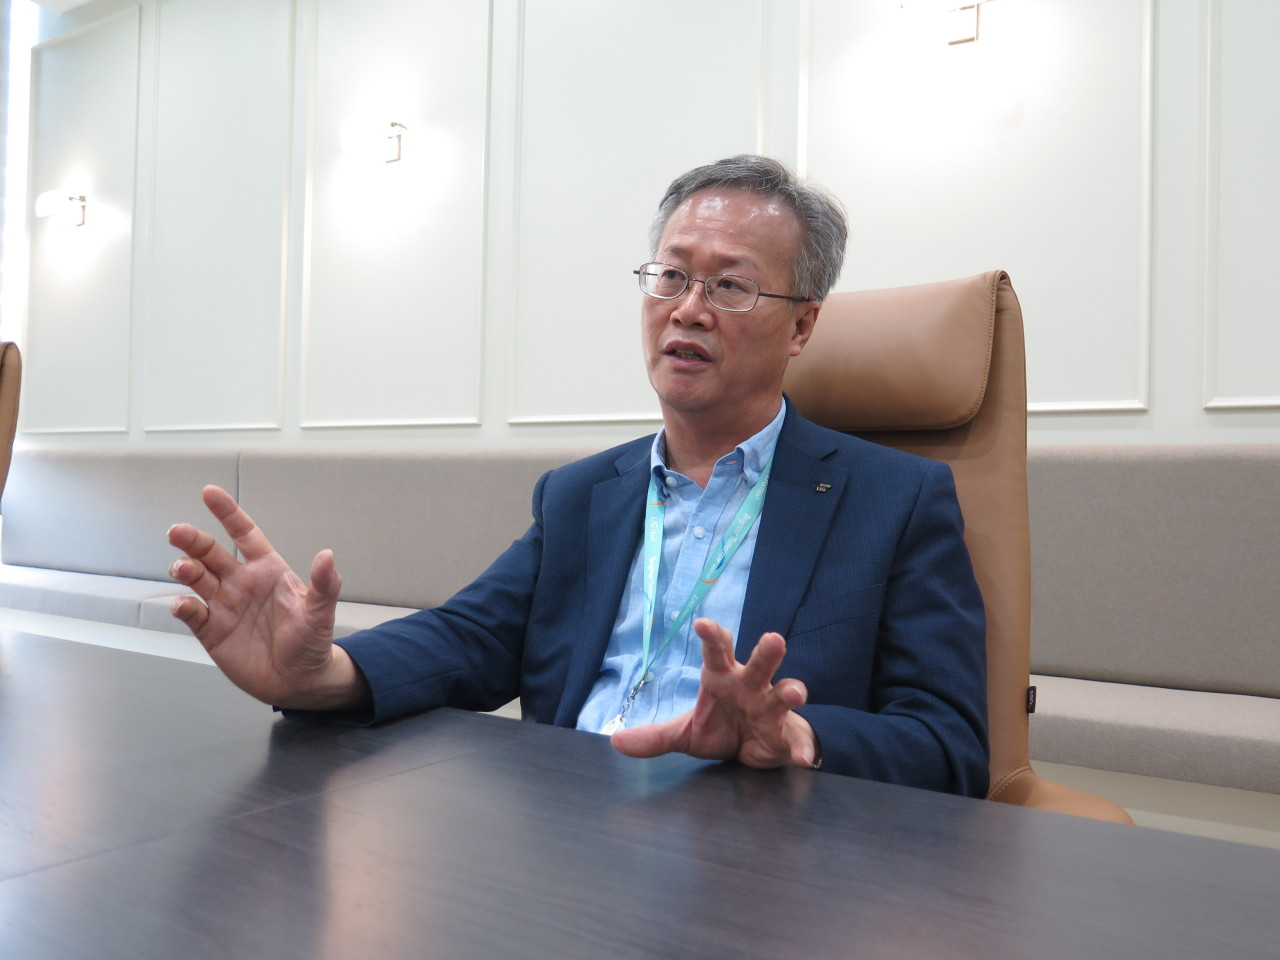 Jung Byung-gi, vice president and head of command, control, communication and intelligence business at LIG Nex1 explains the firm's satellite navigation ambitions in an interview with The Korea Herald at the company's research and development center in Pangyo, Gyeonggi Province. (LIG Nex1)